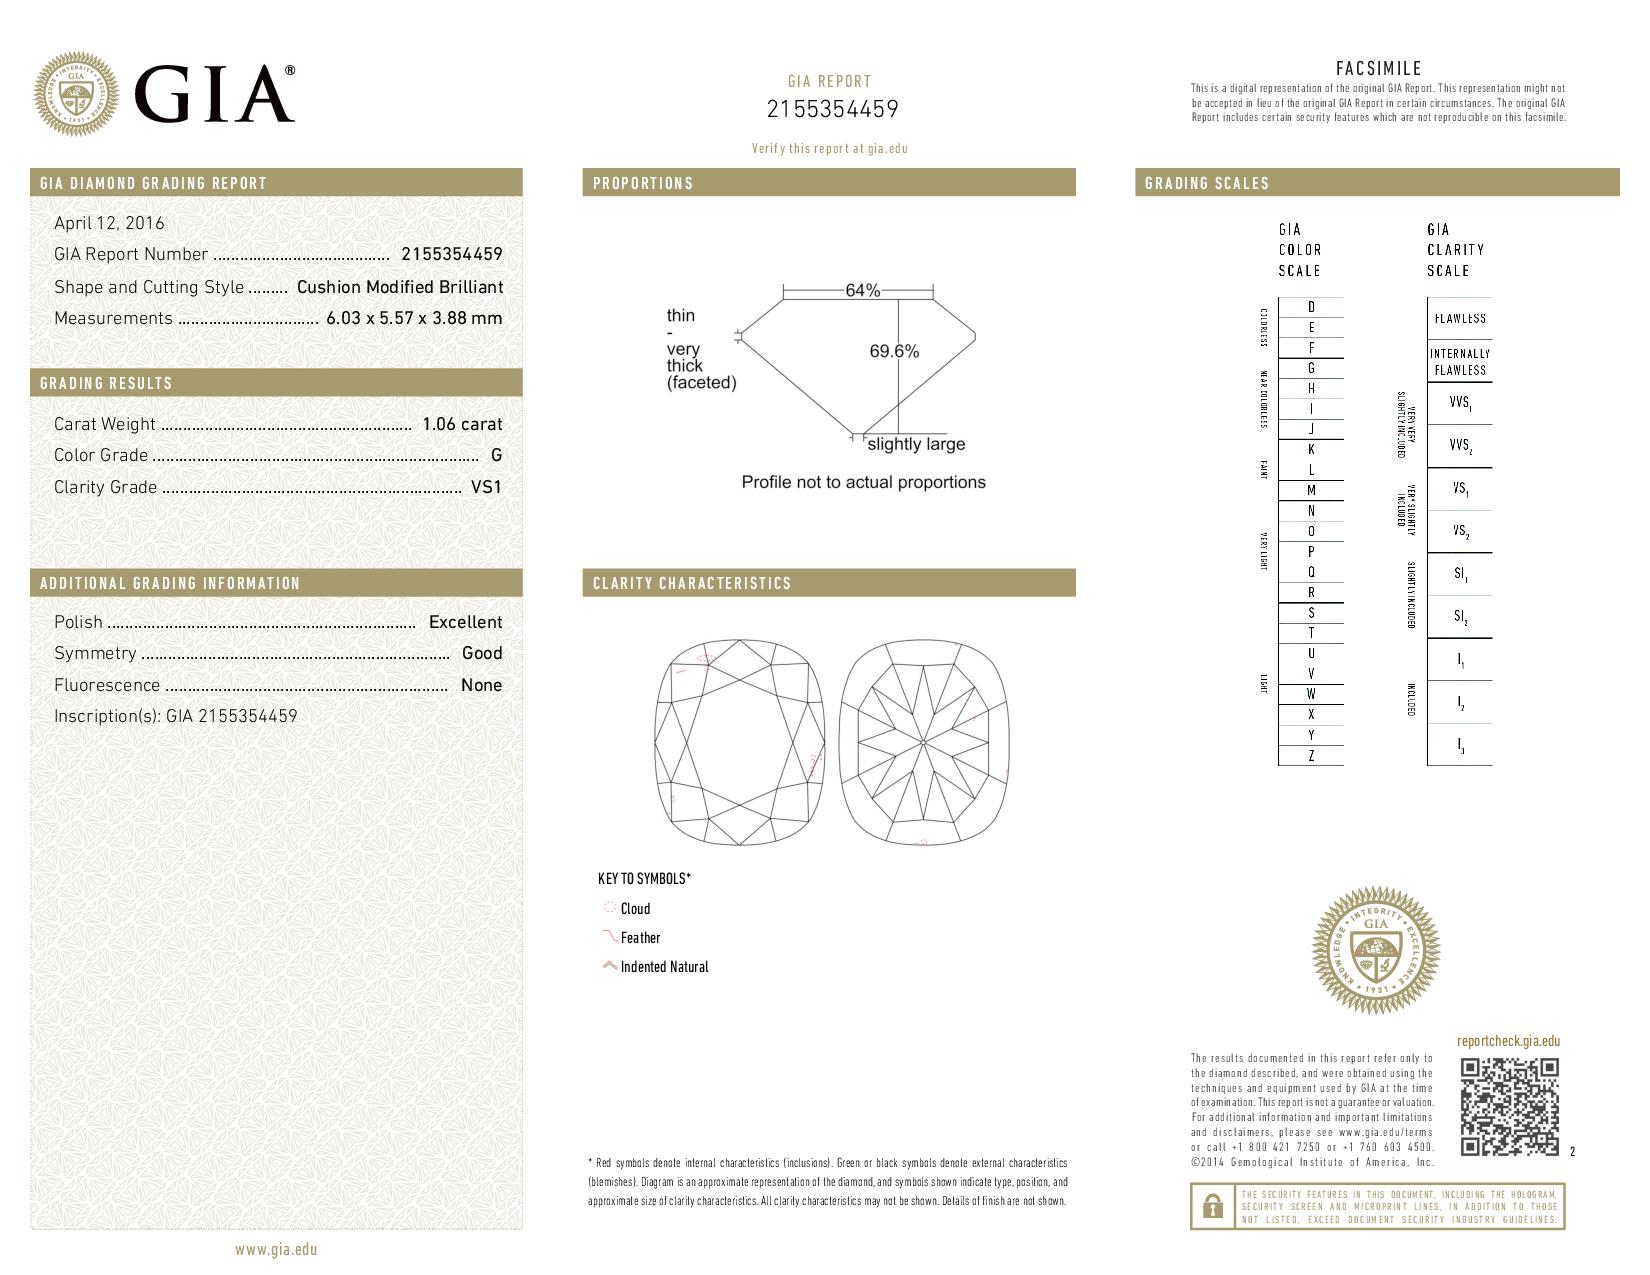 This is a 1.06 carat cushion shape, G color, VS1 clarity natural diamond accompanied by a GIA grading report.